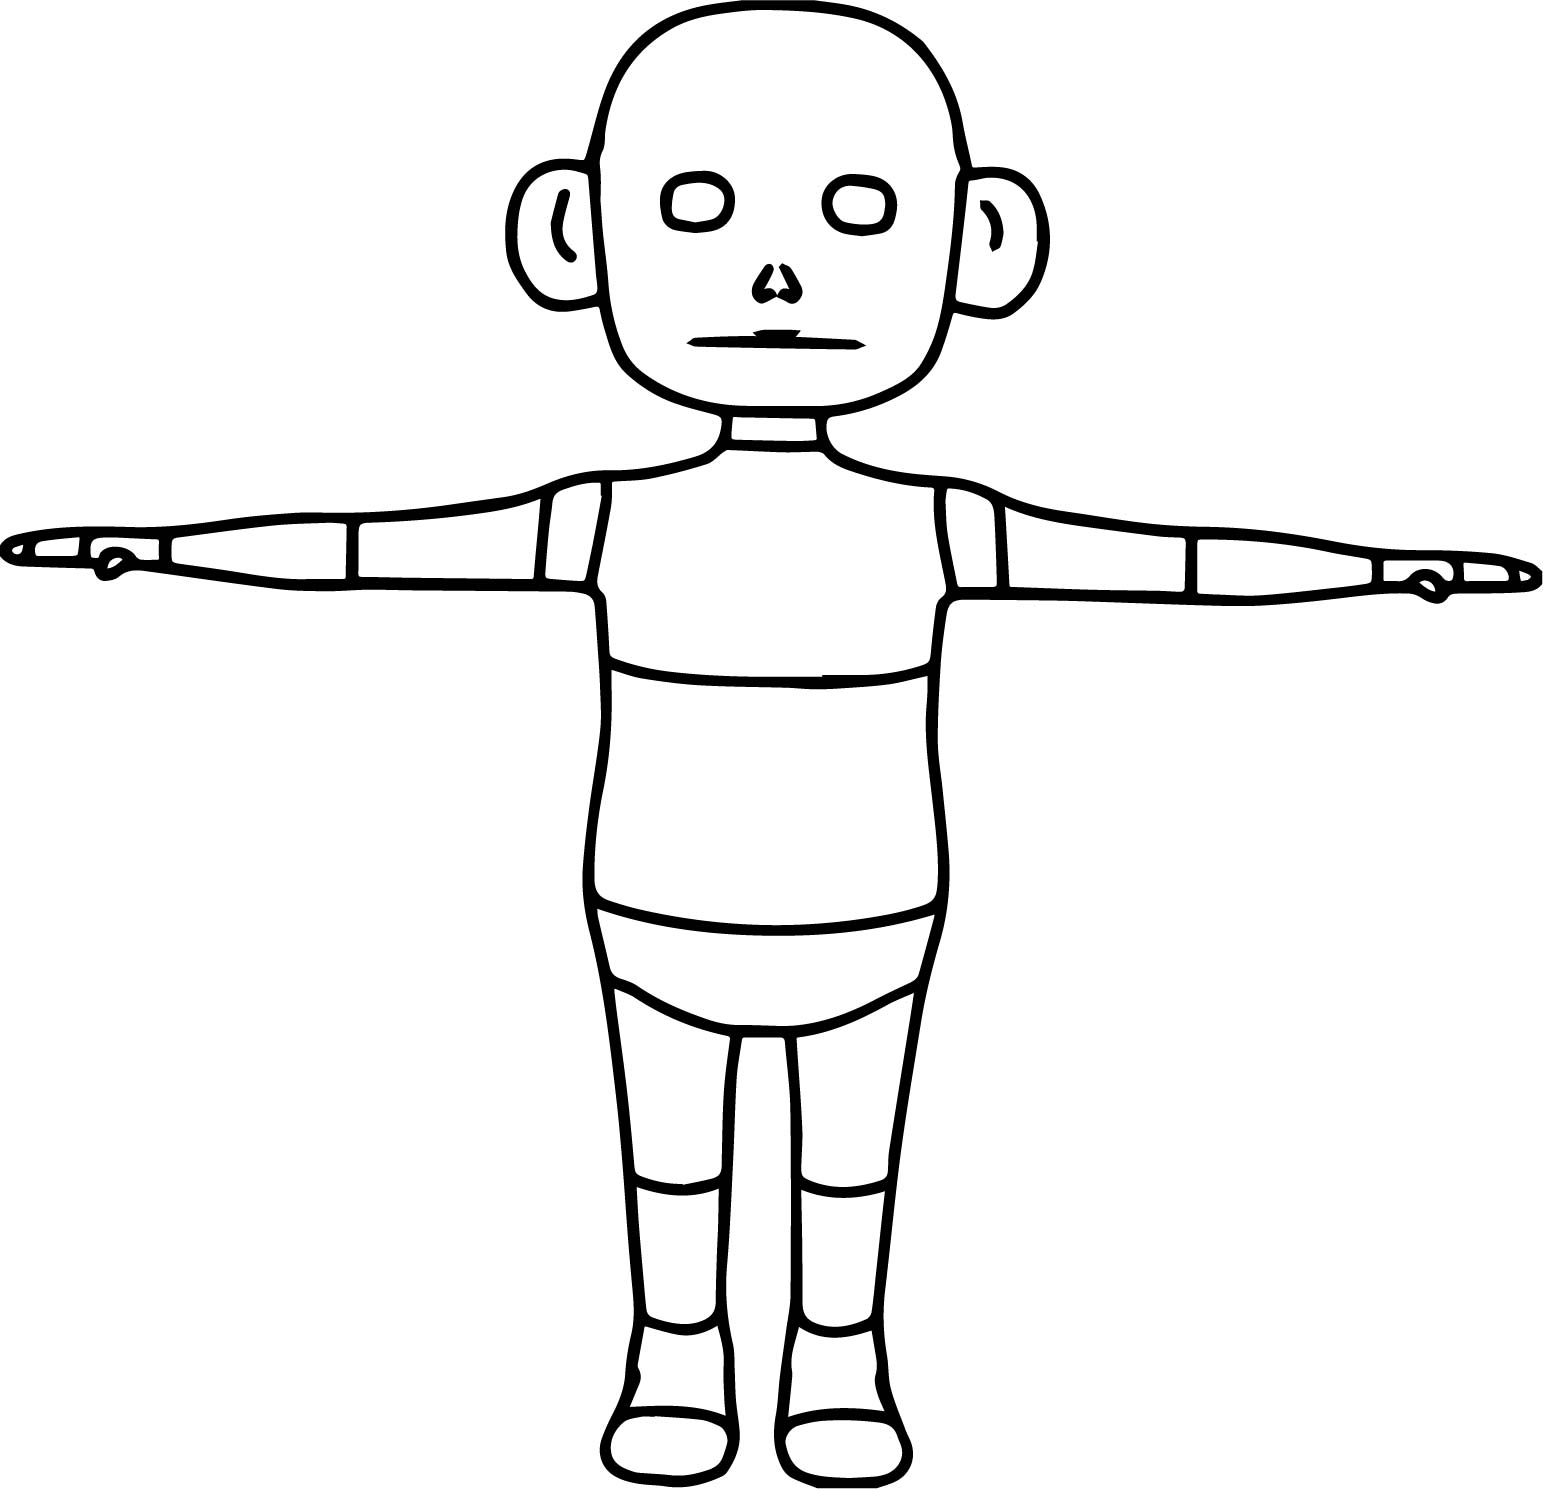 Open Arms Space Monkey Coloring Page